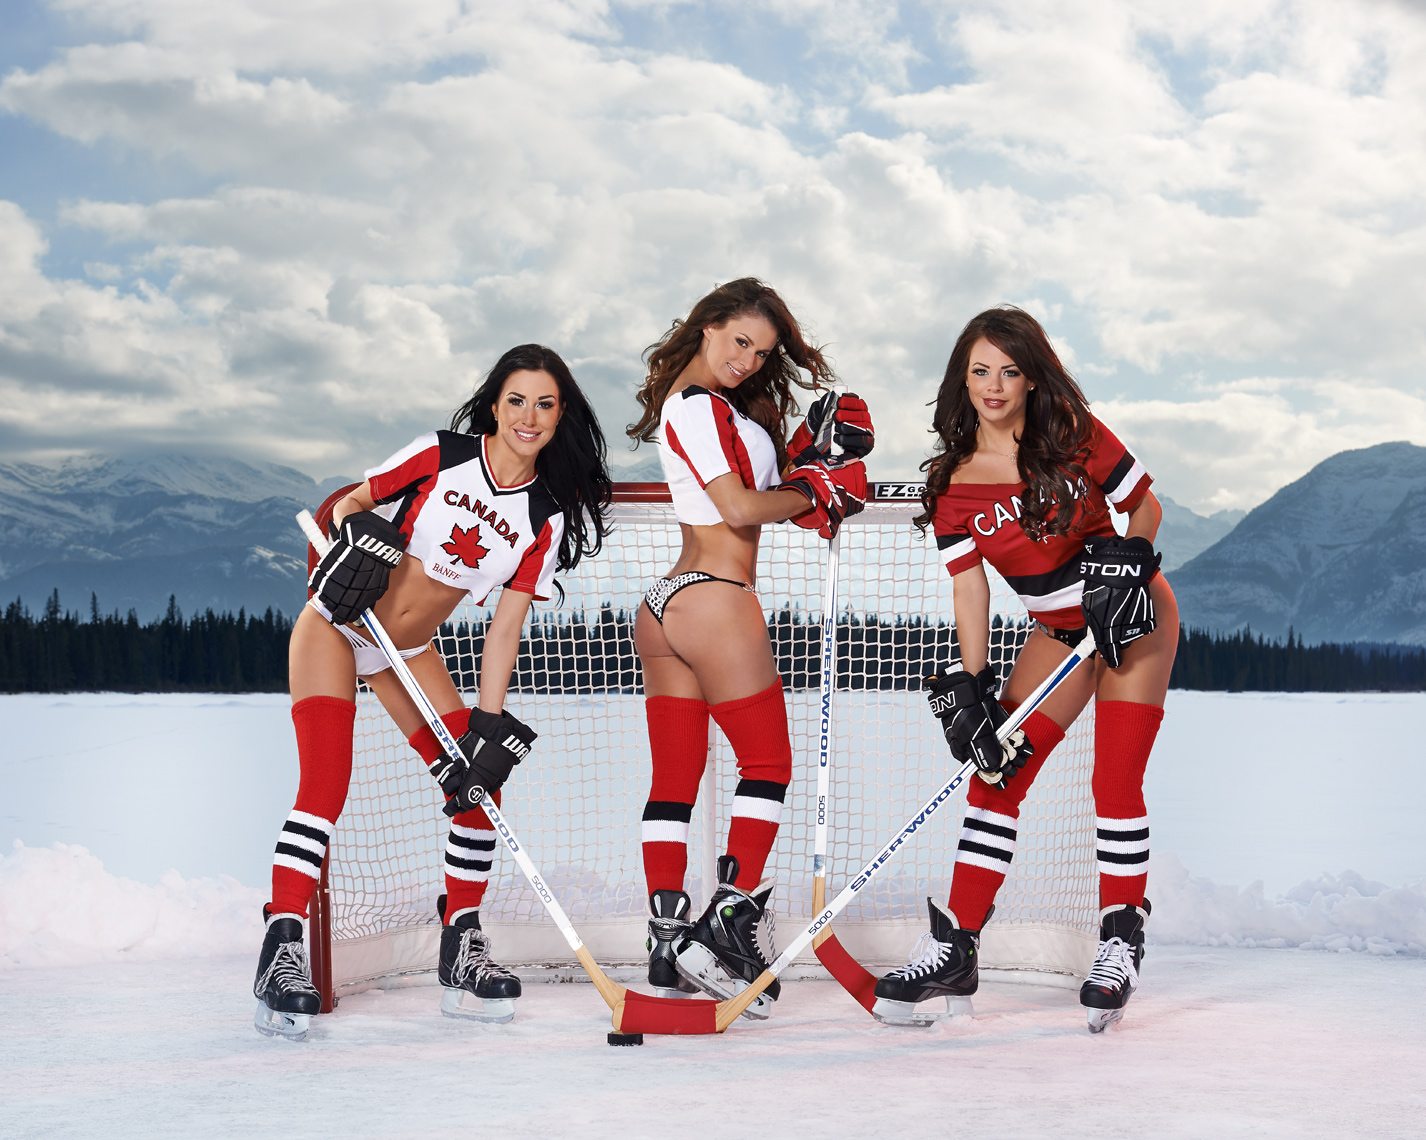 2017-Vancouver-SwimsuitandCalendar-Photographer-ErichSaide-Calender-SportsIllustrated-Banff-Hockey